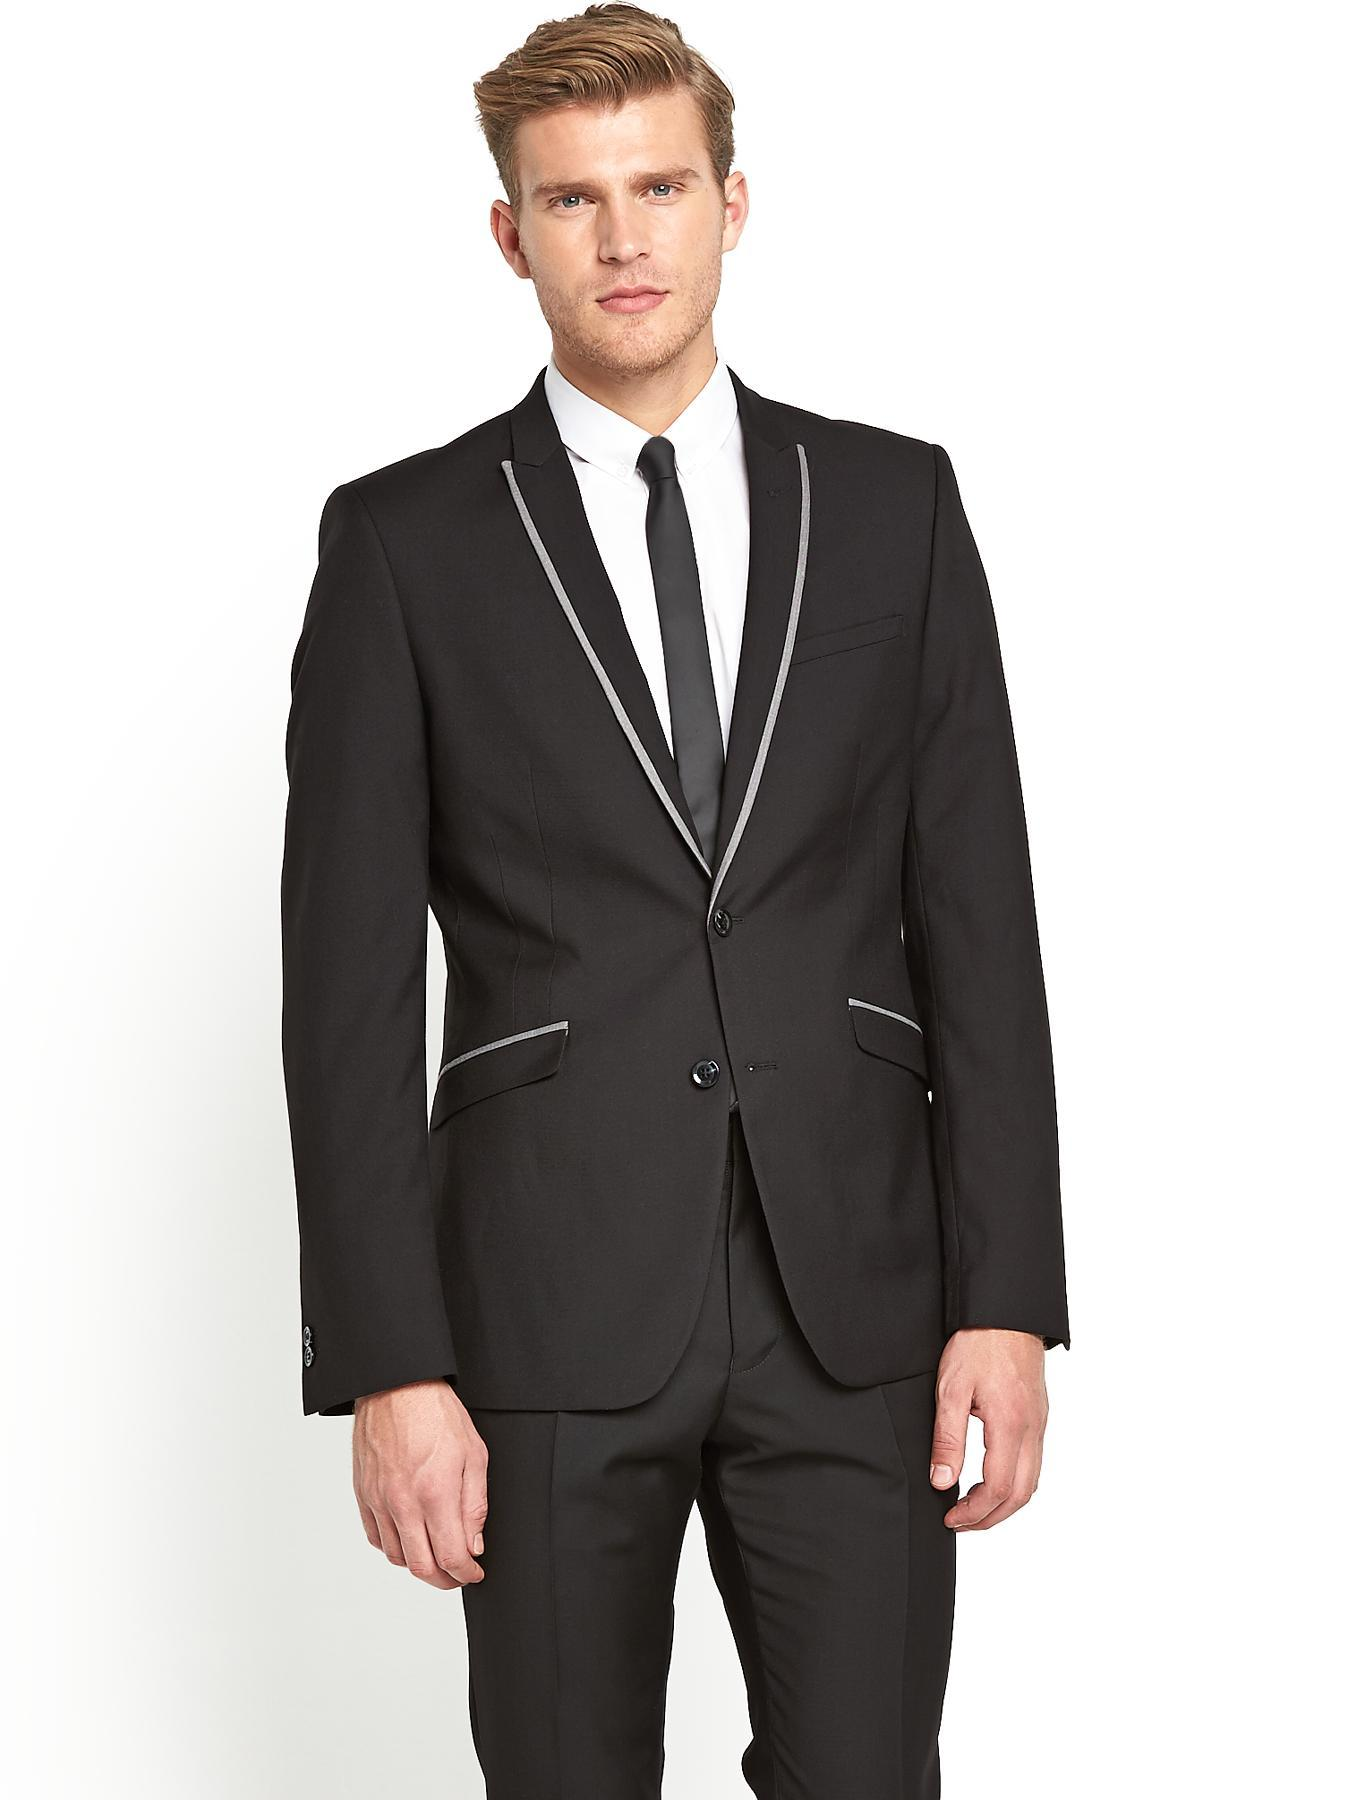 Mens Peak Lapel Single Breasted Slim Fit Suit Jacket - Black, Black